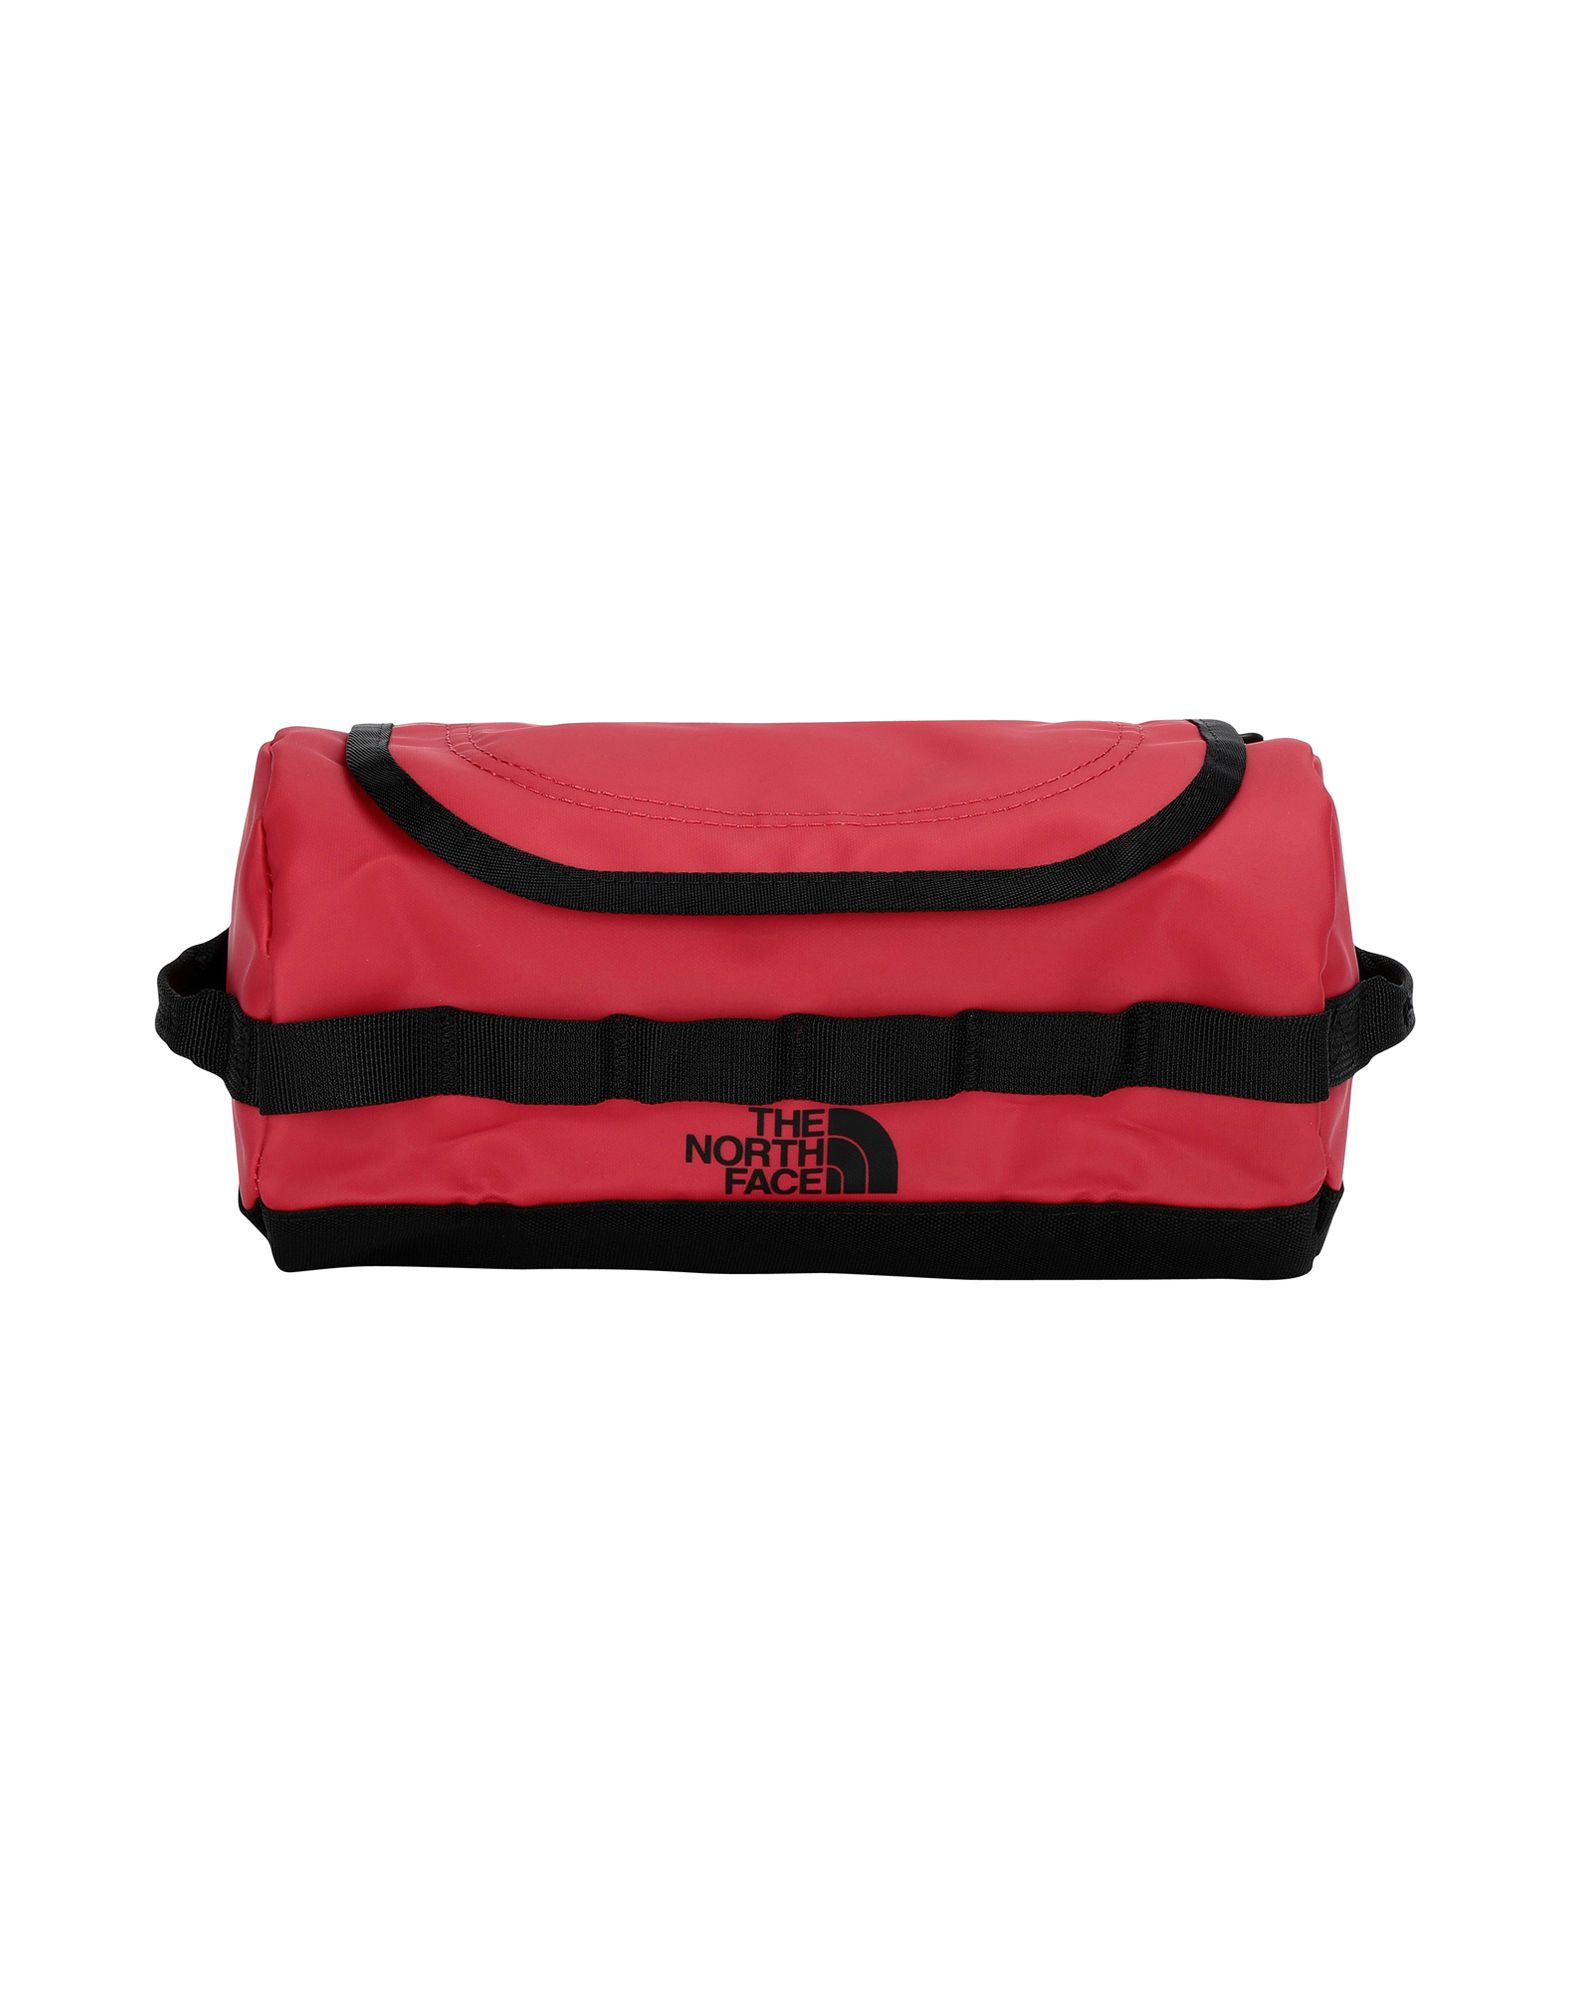 THE NORTH FACE Beauty case pinetti beauty case